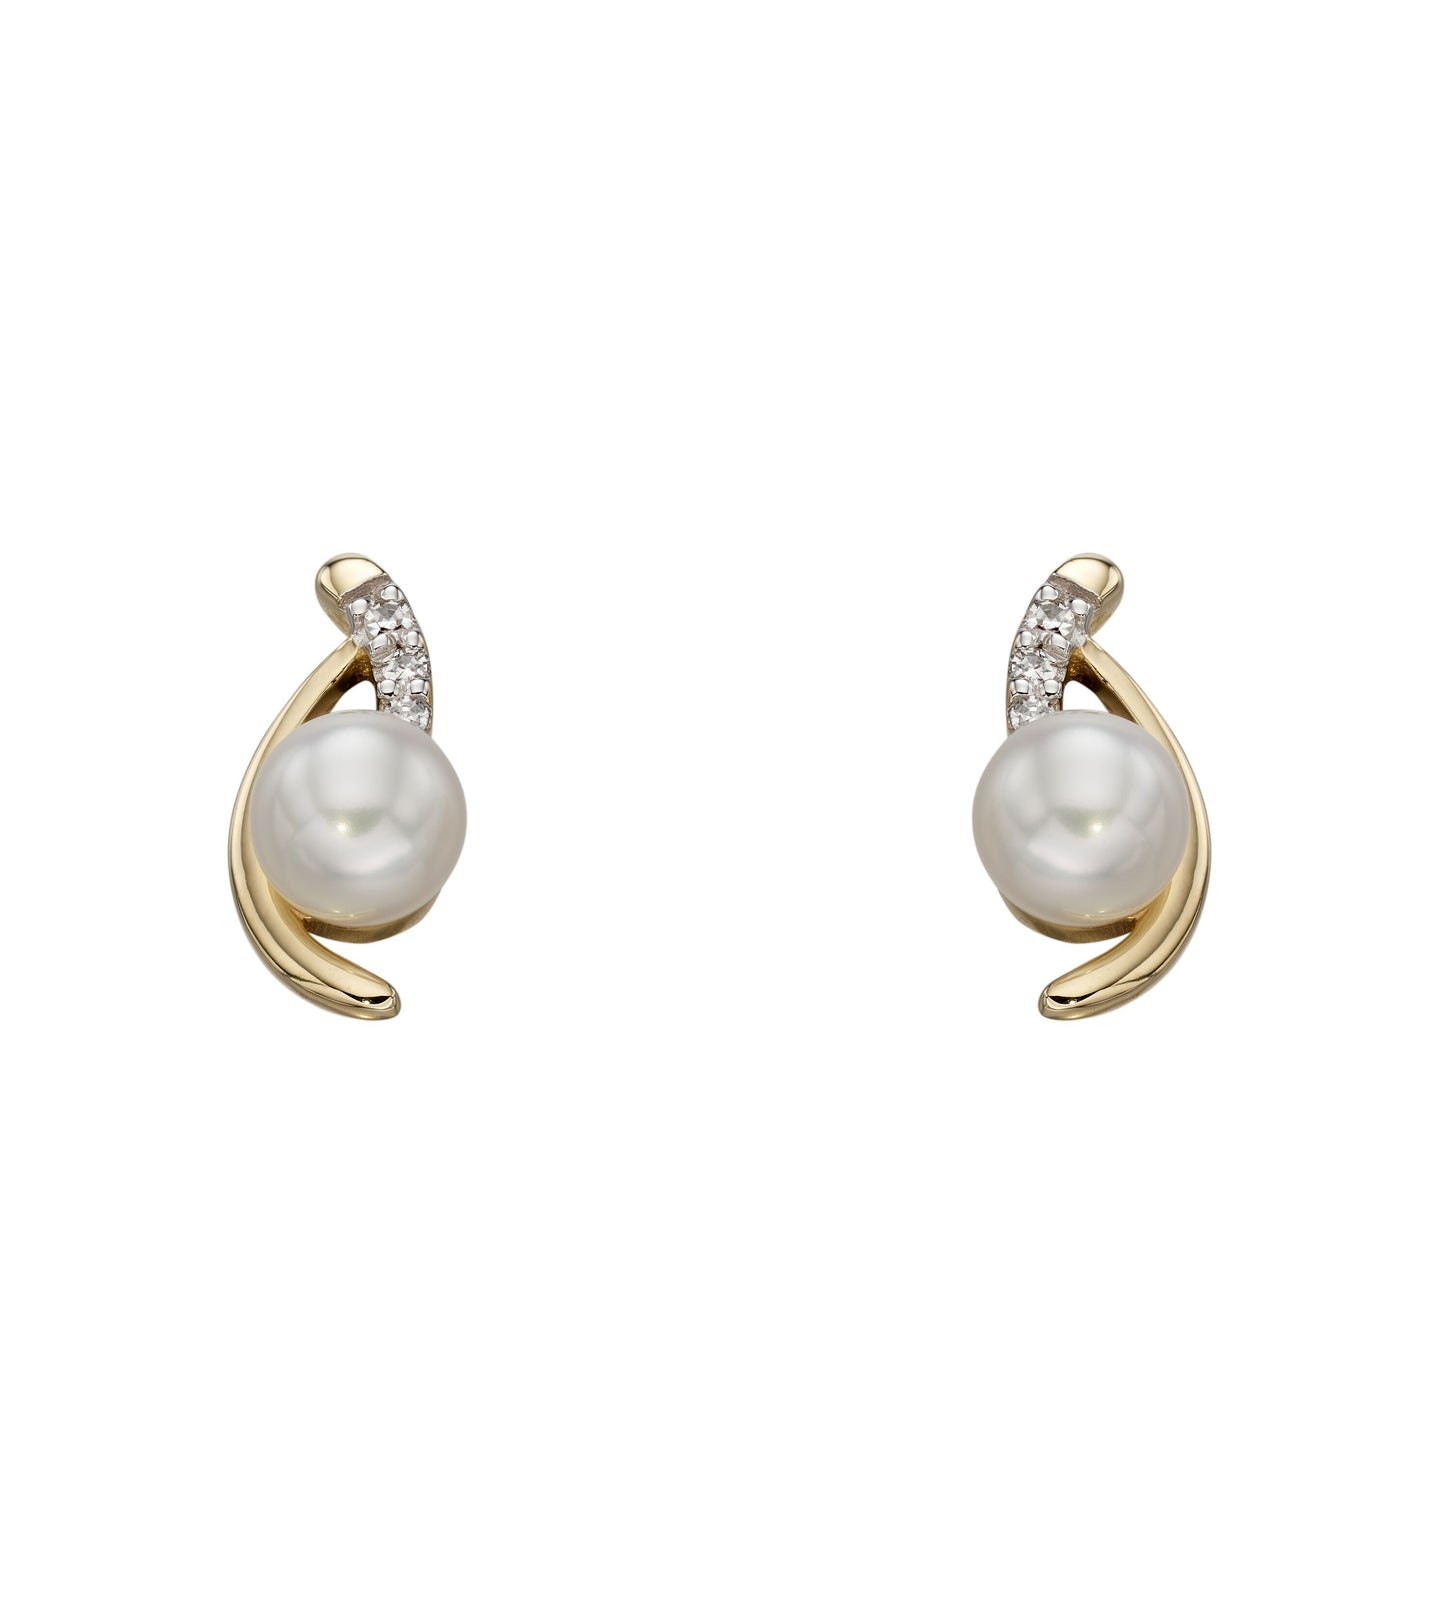 9ct Pearl and Diamond Earrings